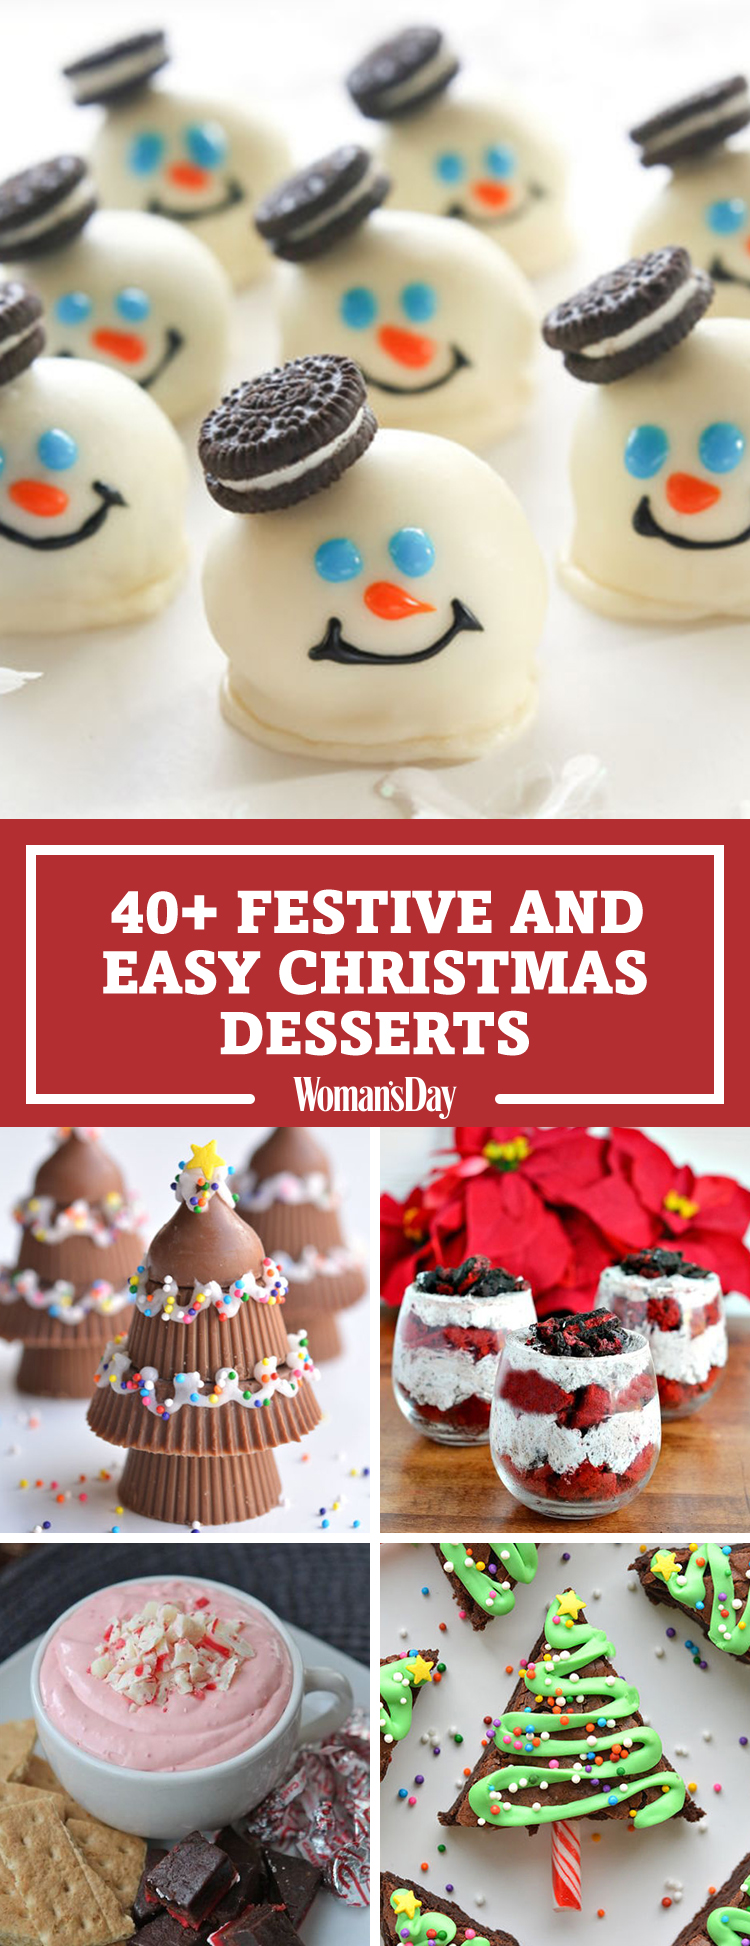 57 easy christmas dessert recipes best ideas for fun. Black Bedroom Furniture Sets. Home Design Ideas